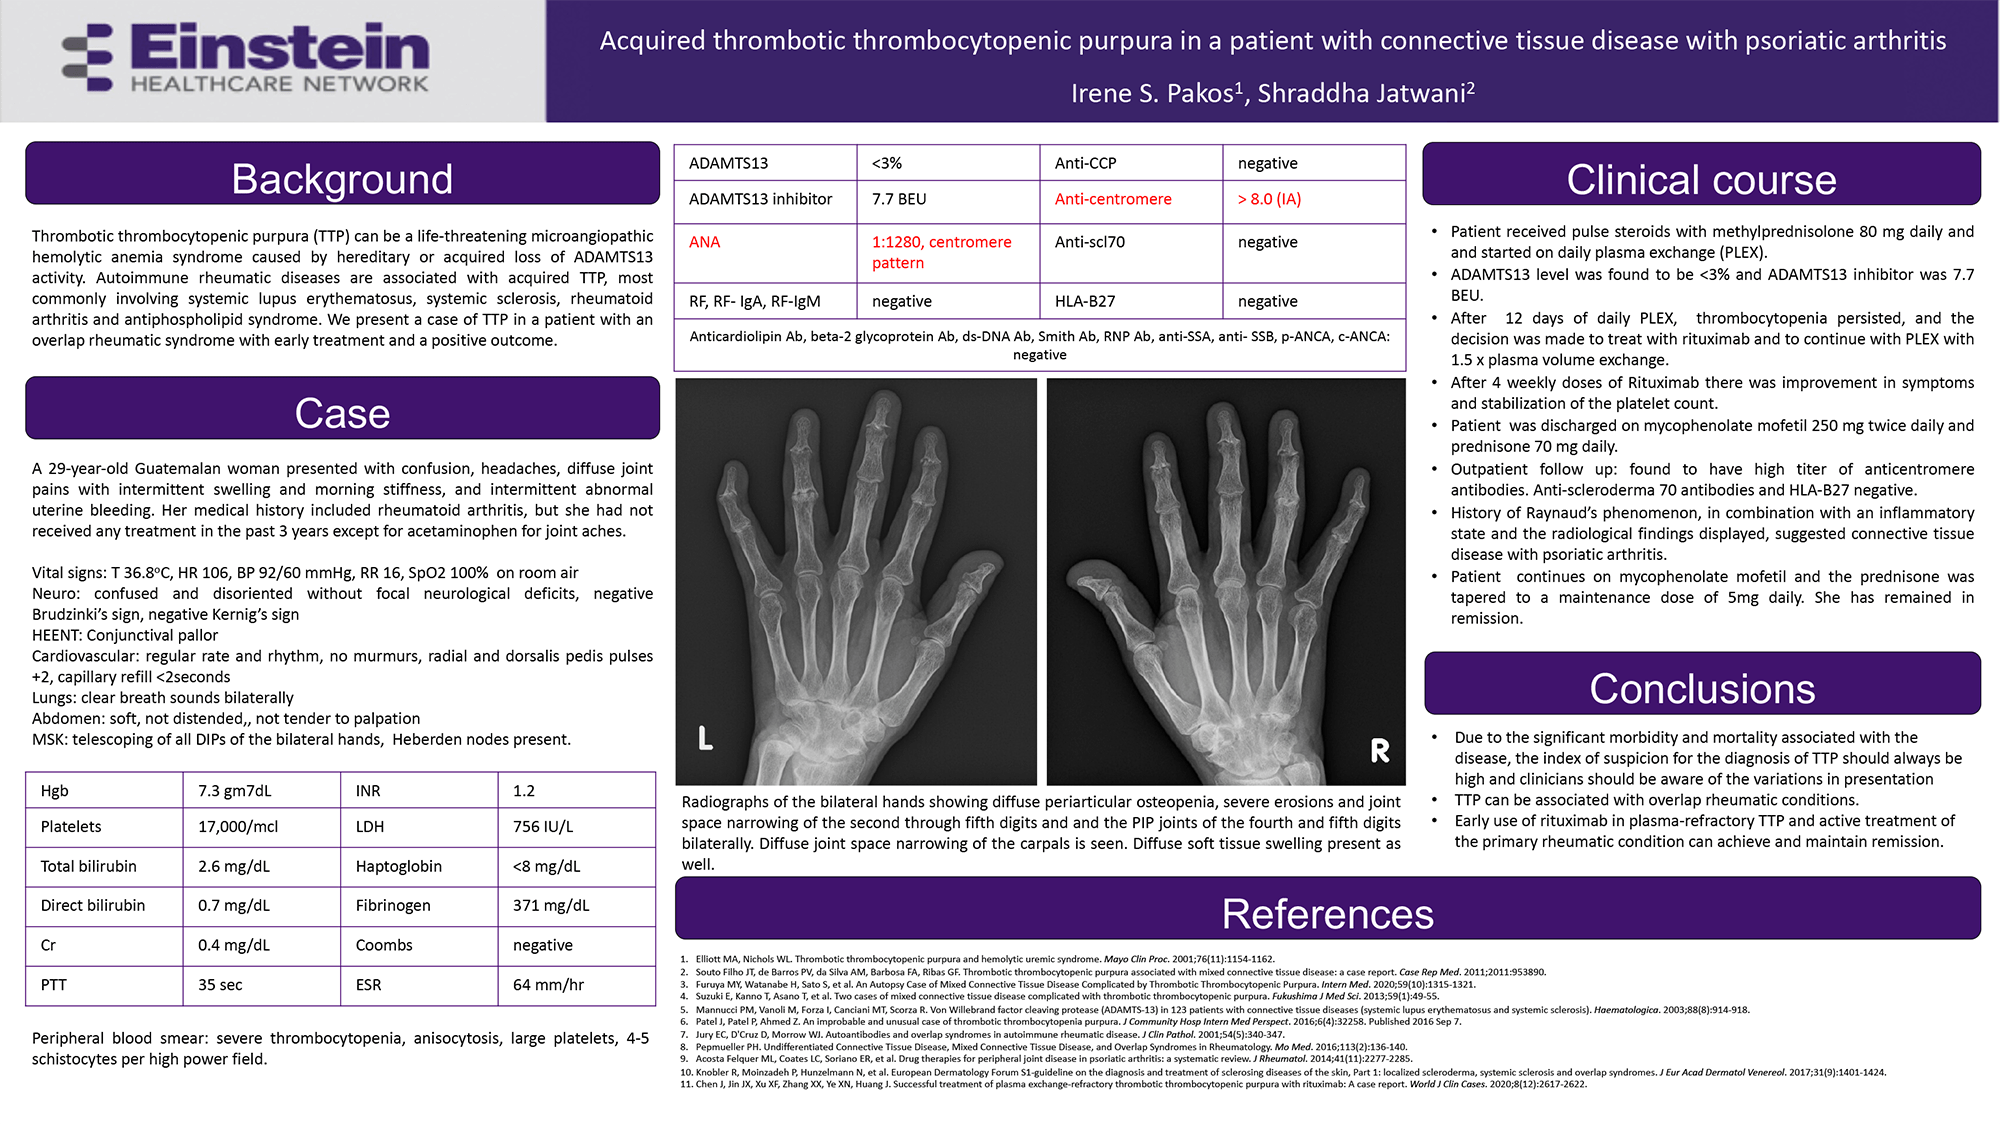 Irene Pakos - PAS-106-Acquired thrombotic thrombocytopenic purpura in a patient with connective tissue disease with psoriatic arthritis